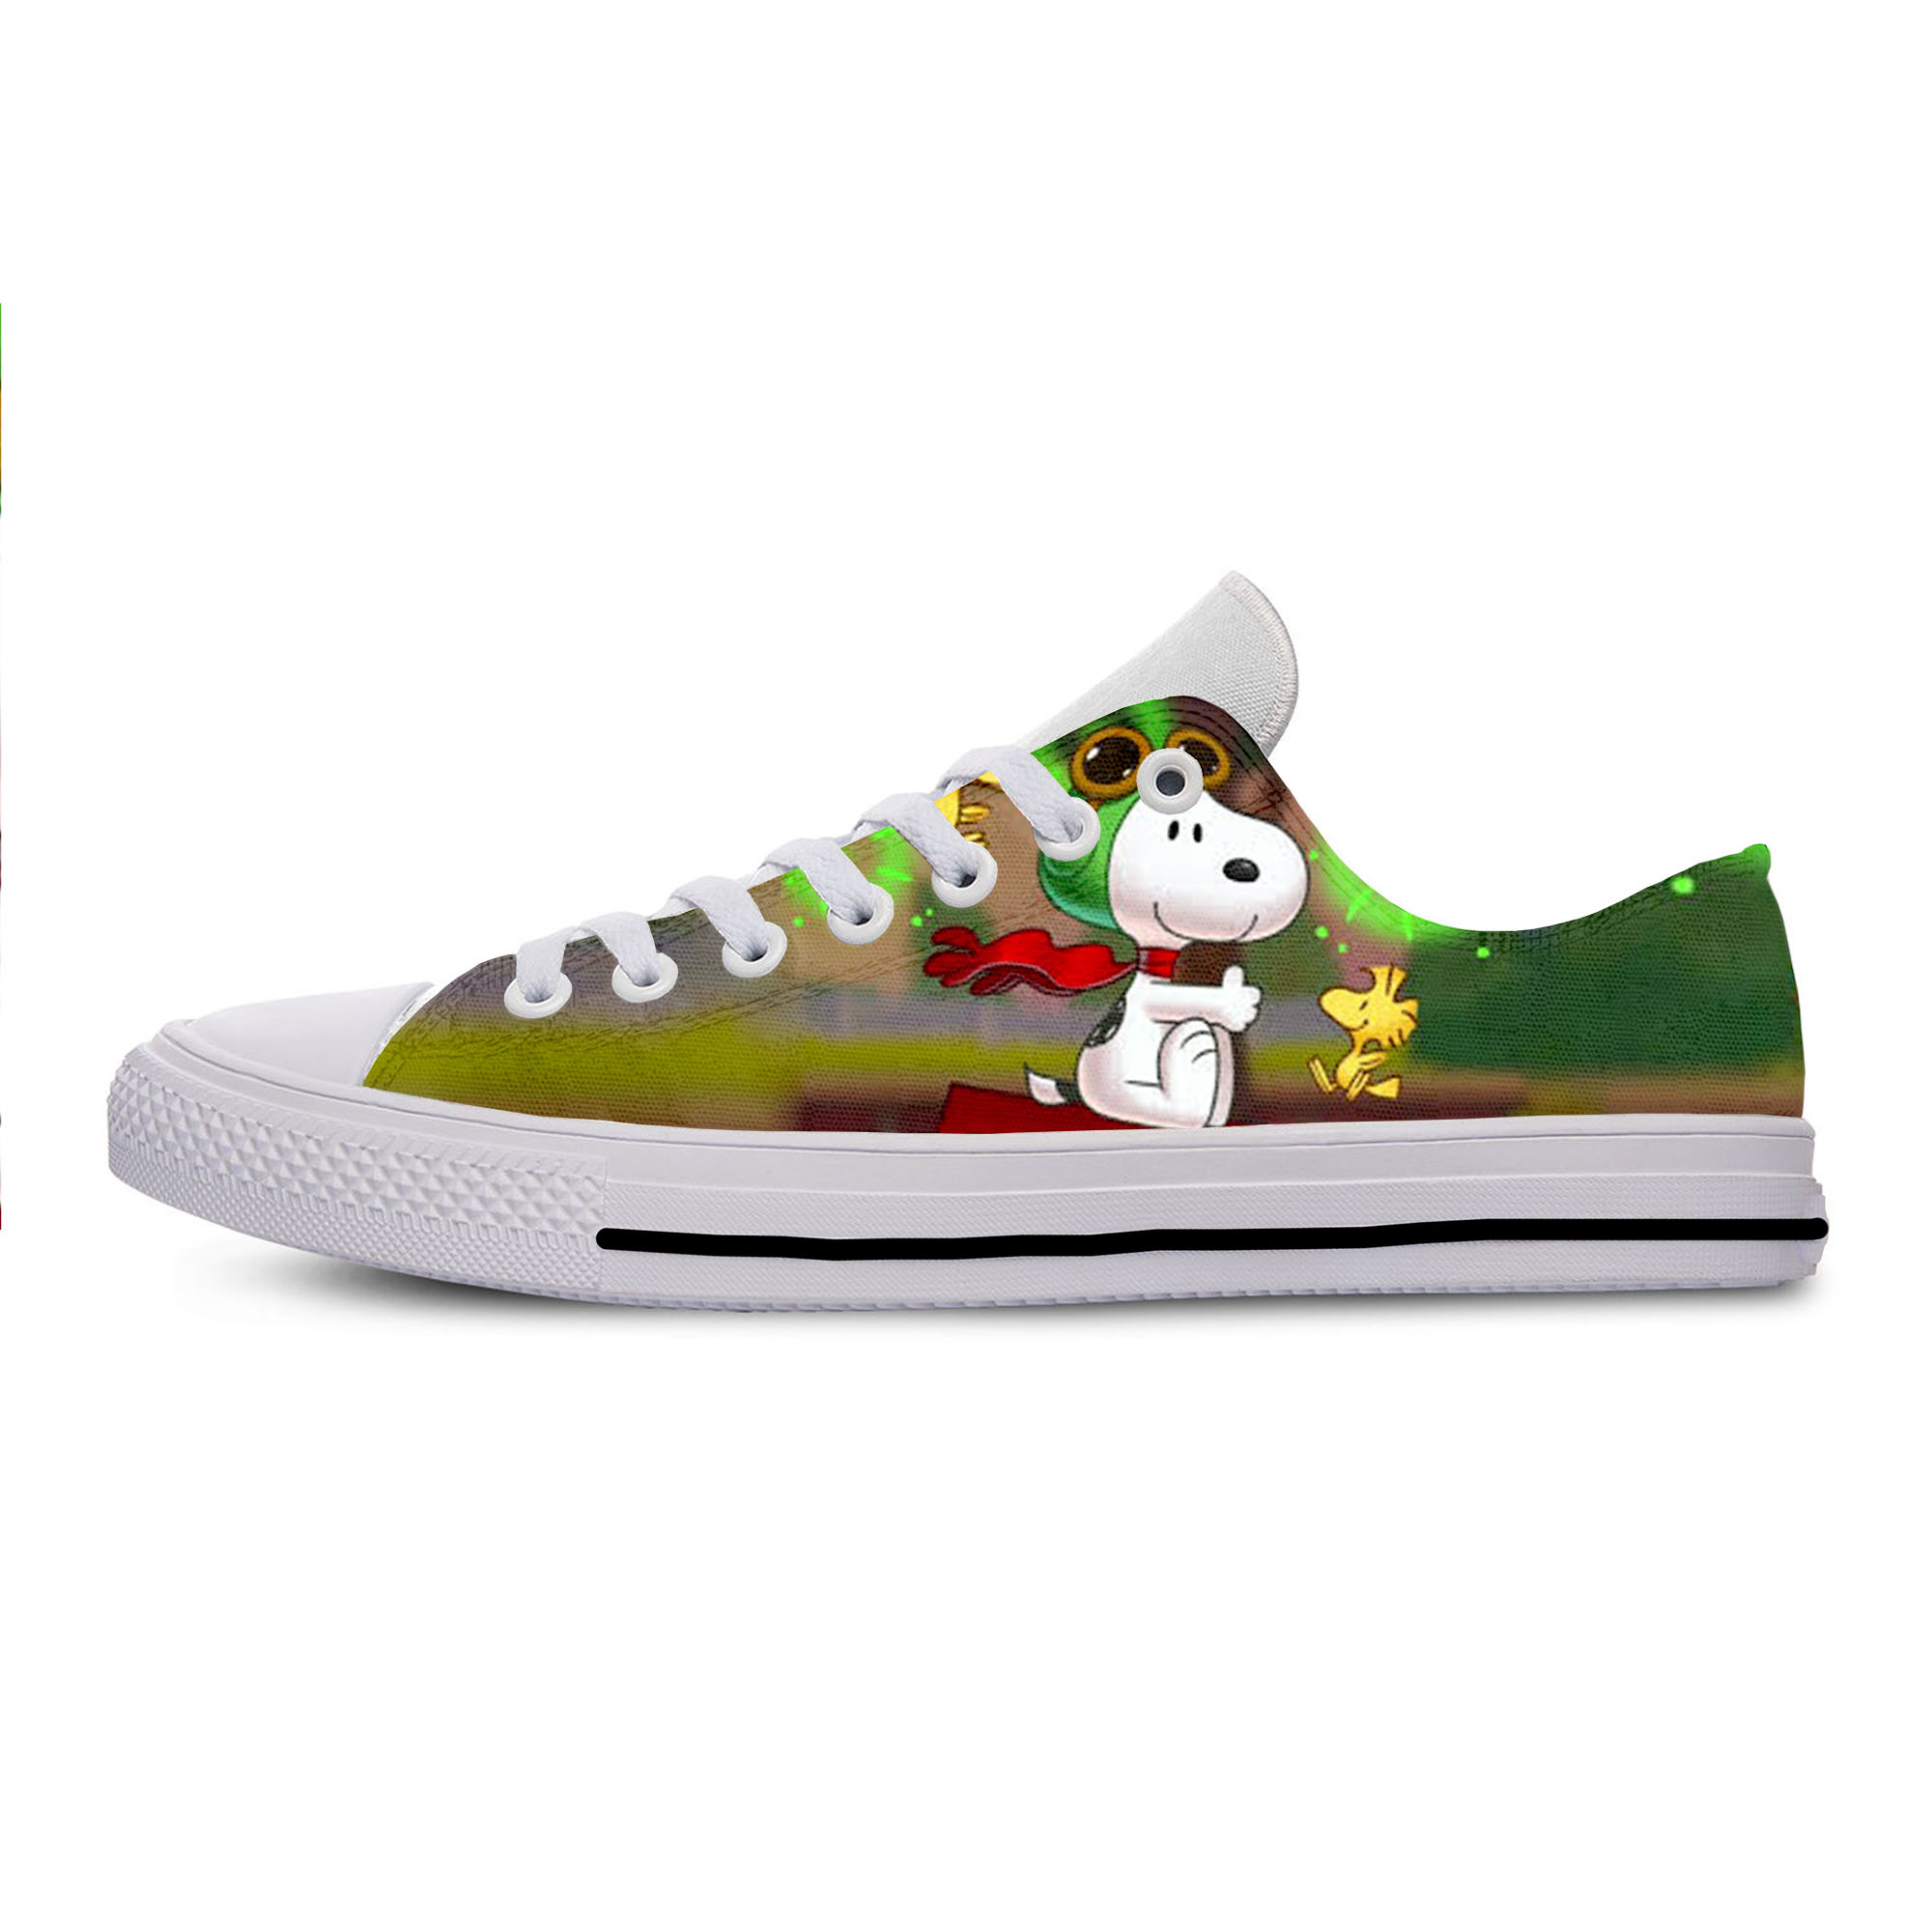 2019 Hot Cool Fashion High New Summer Sneakers Handiness Casual Shoes 3D Printed Cartoon Funny Cute For Men Women S n o o p y